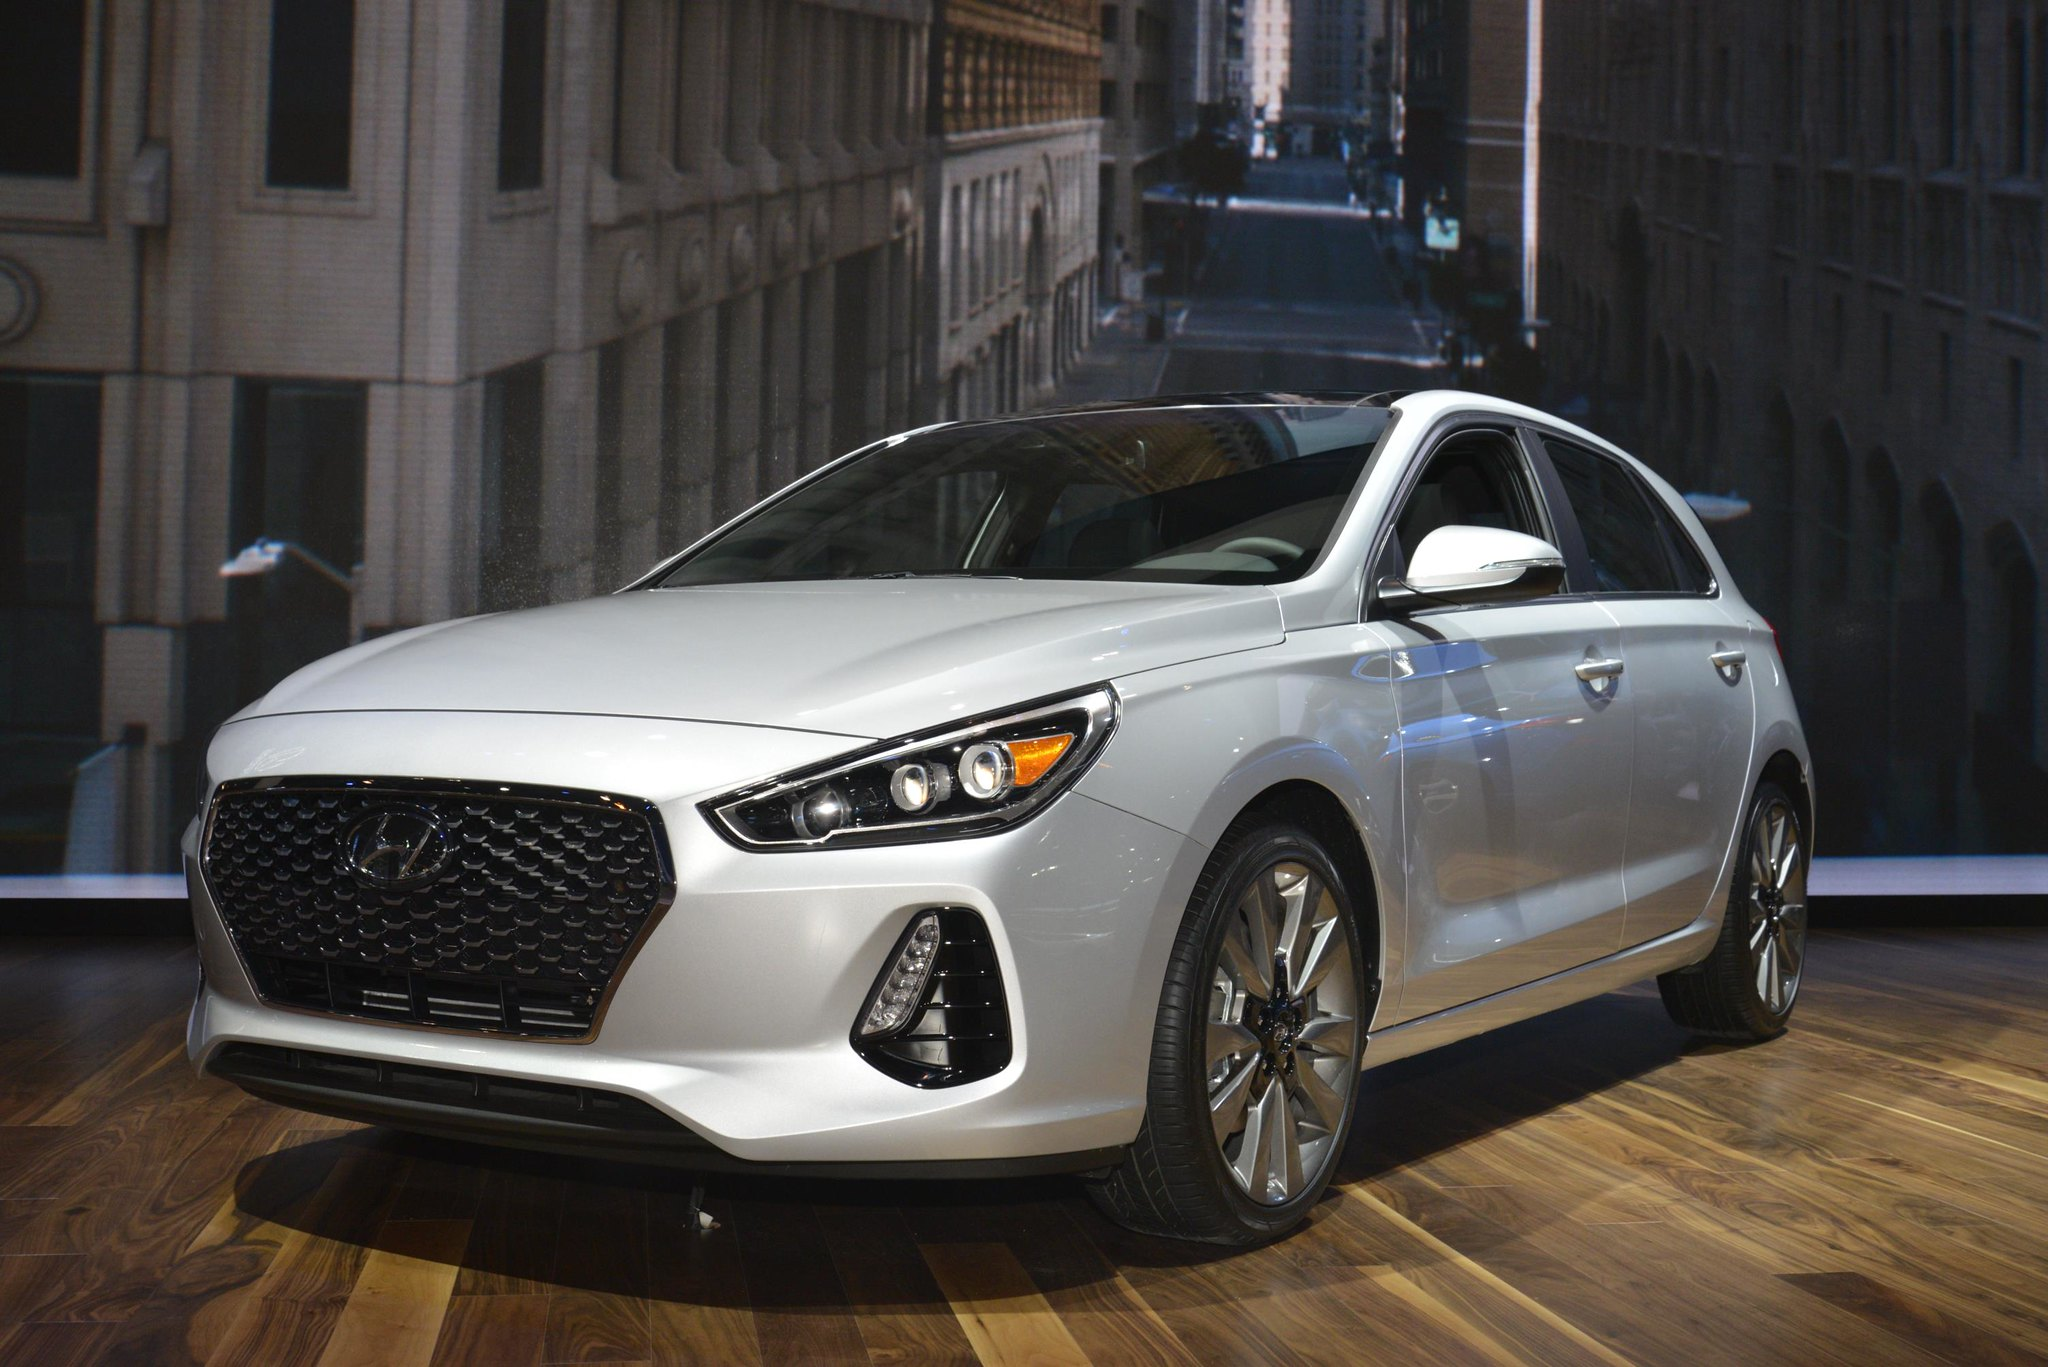 2018 Hyundai Elantra GT live photos: 2017 Chicago Auto Show